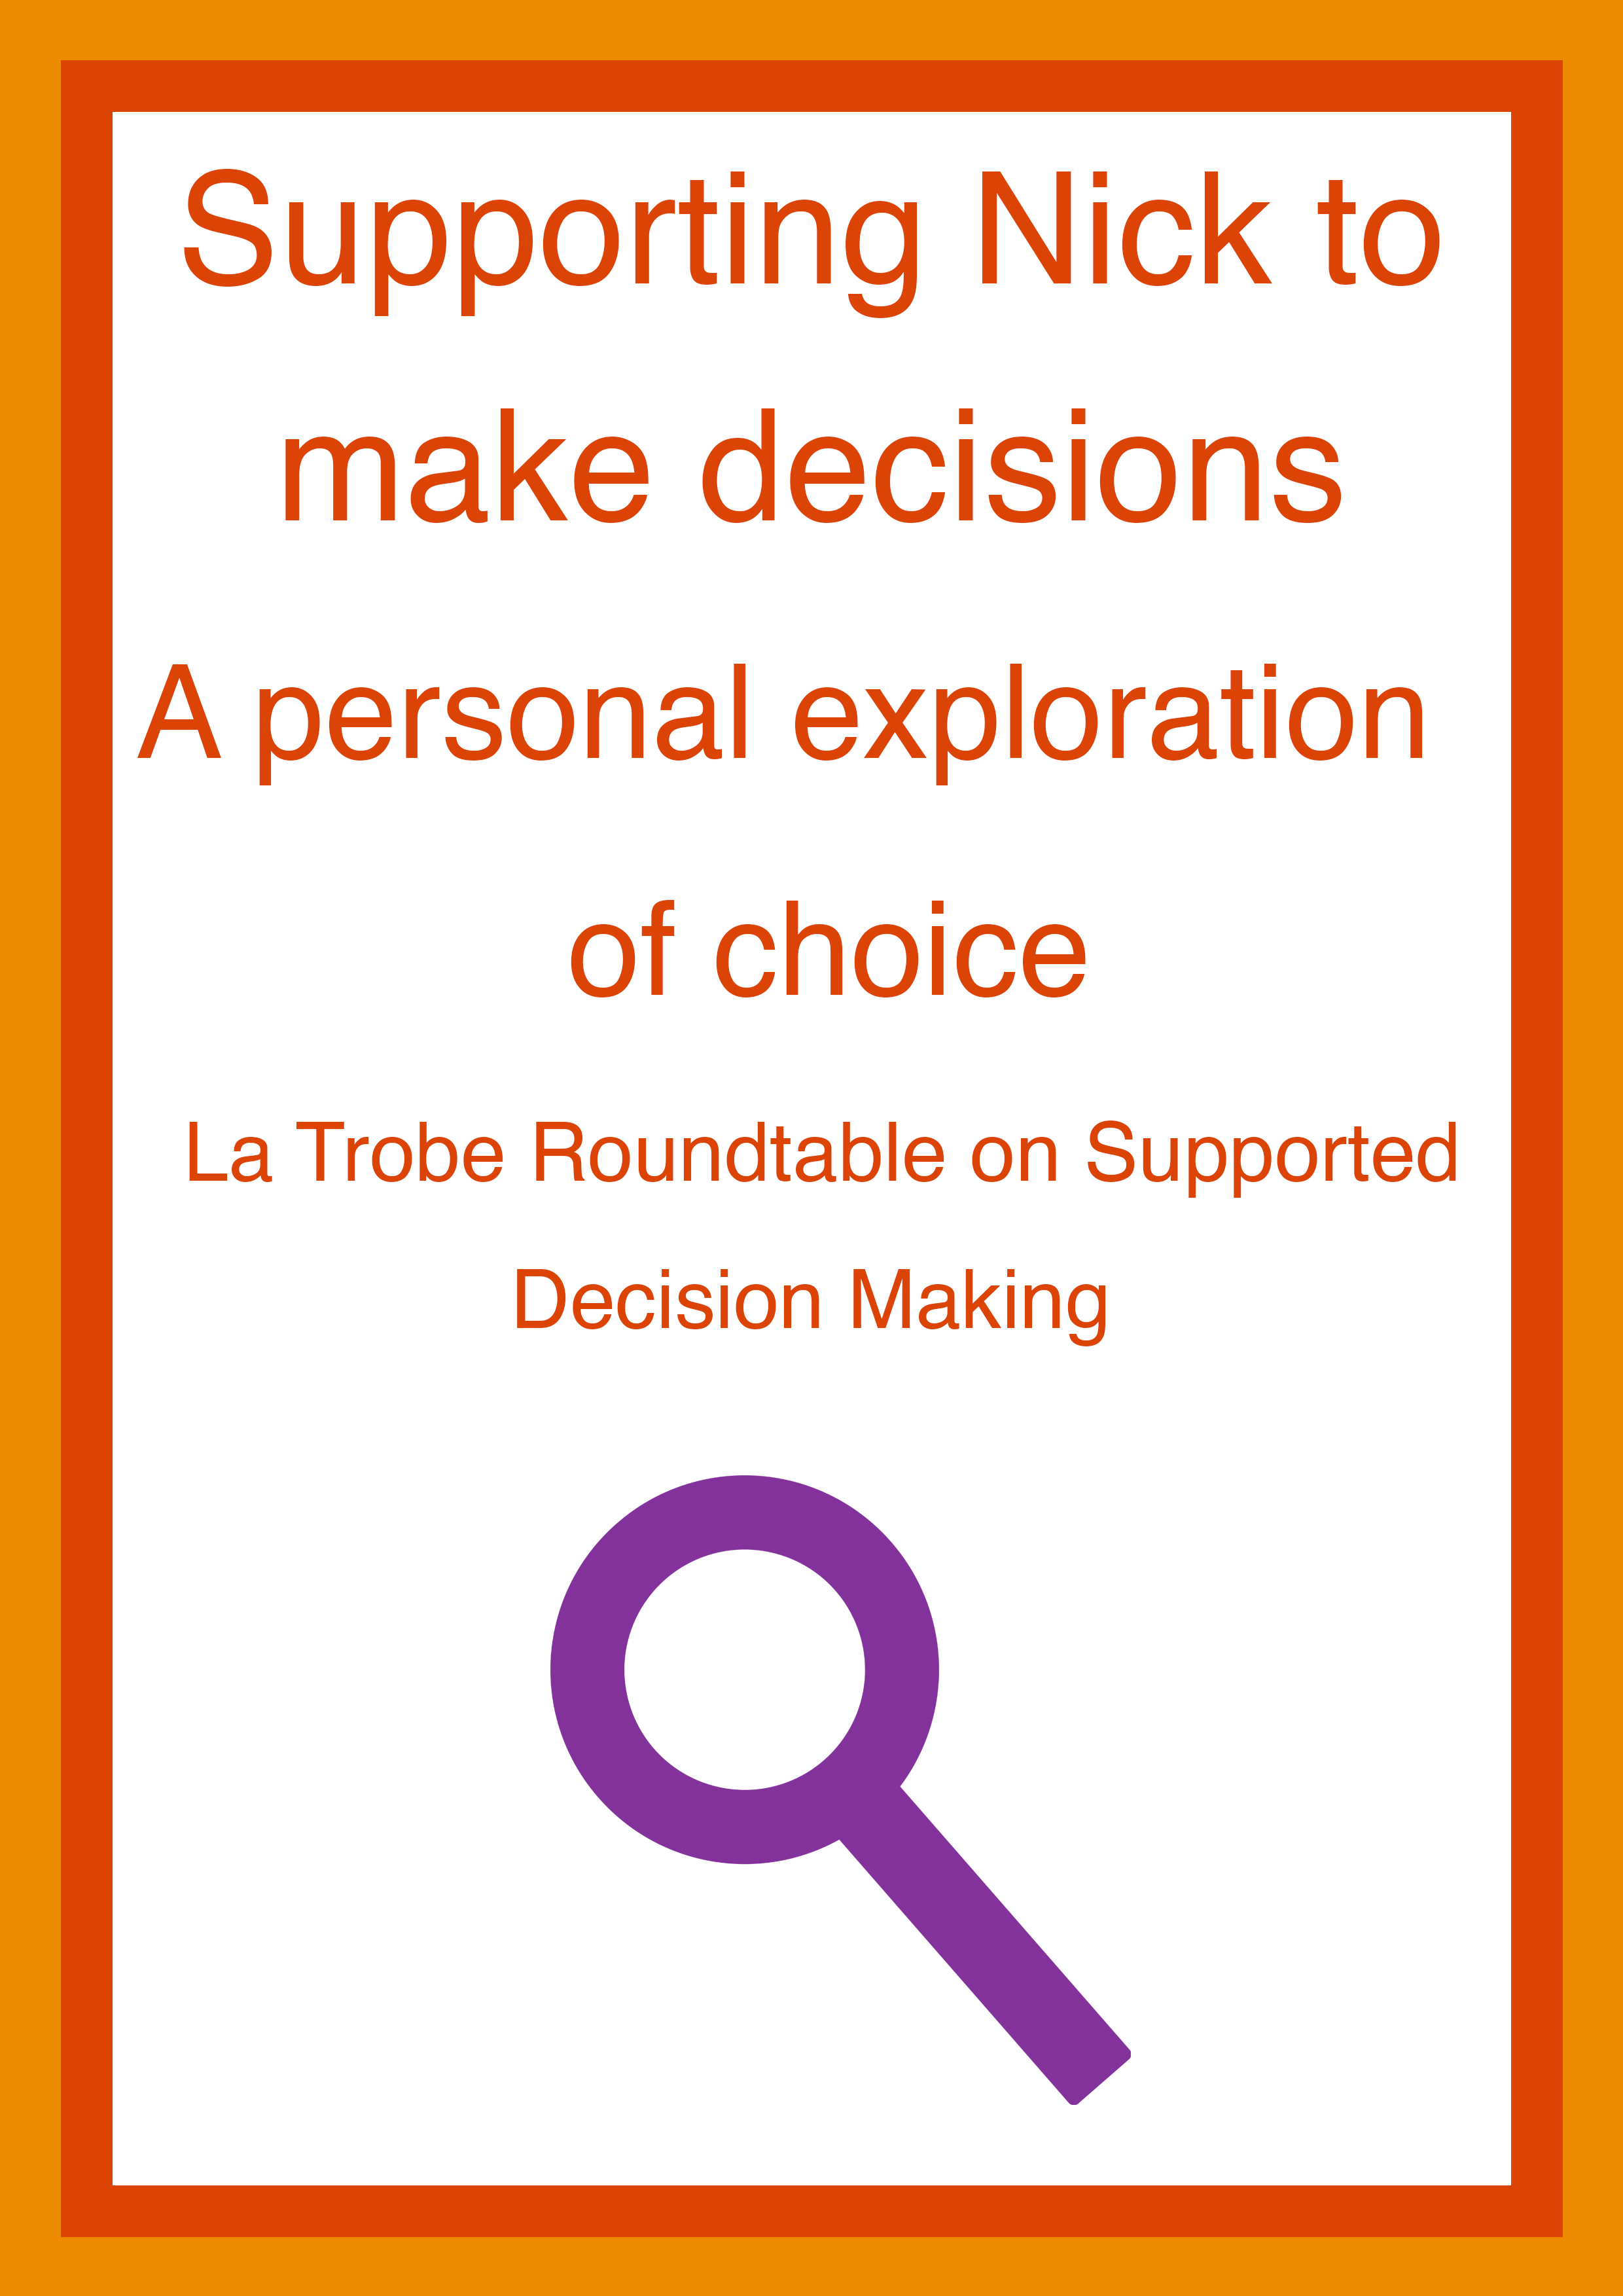 Cover art for: Supporting Nick to make decisions: A personal exploration of choice